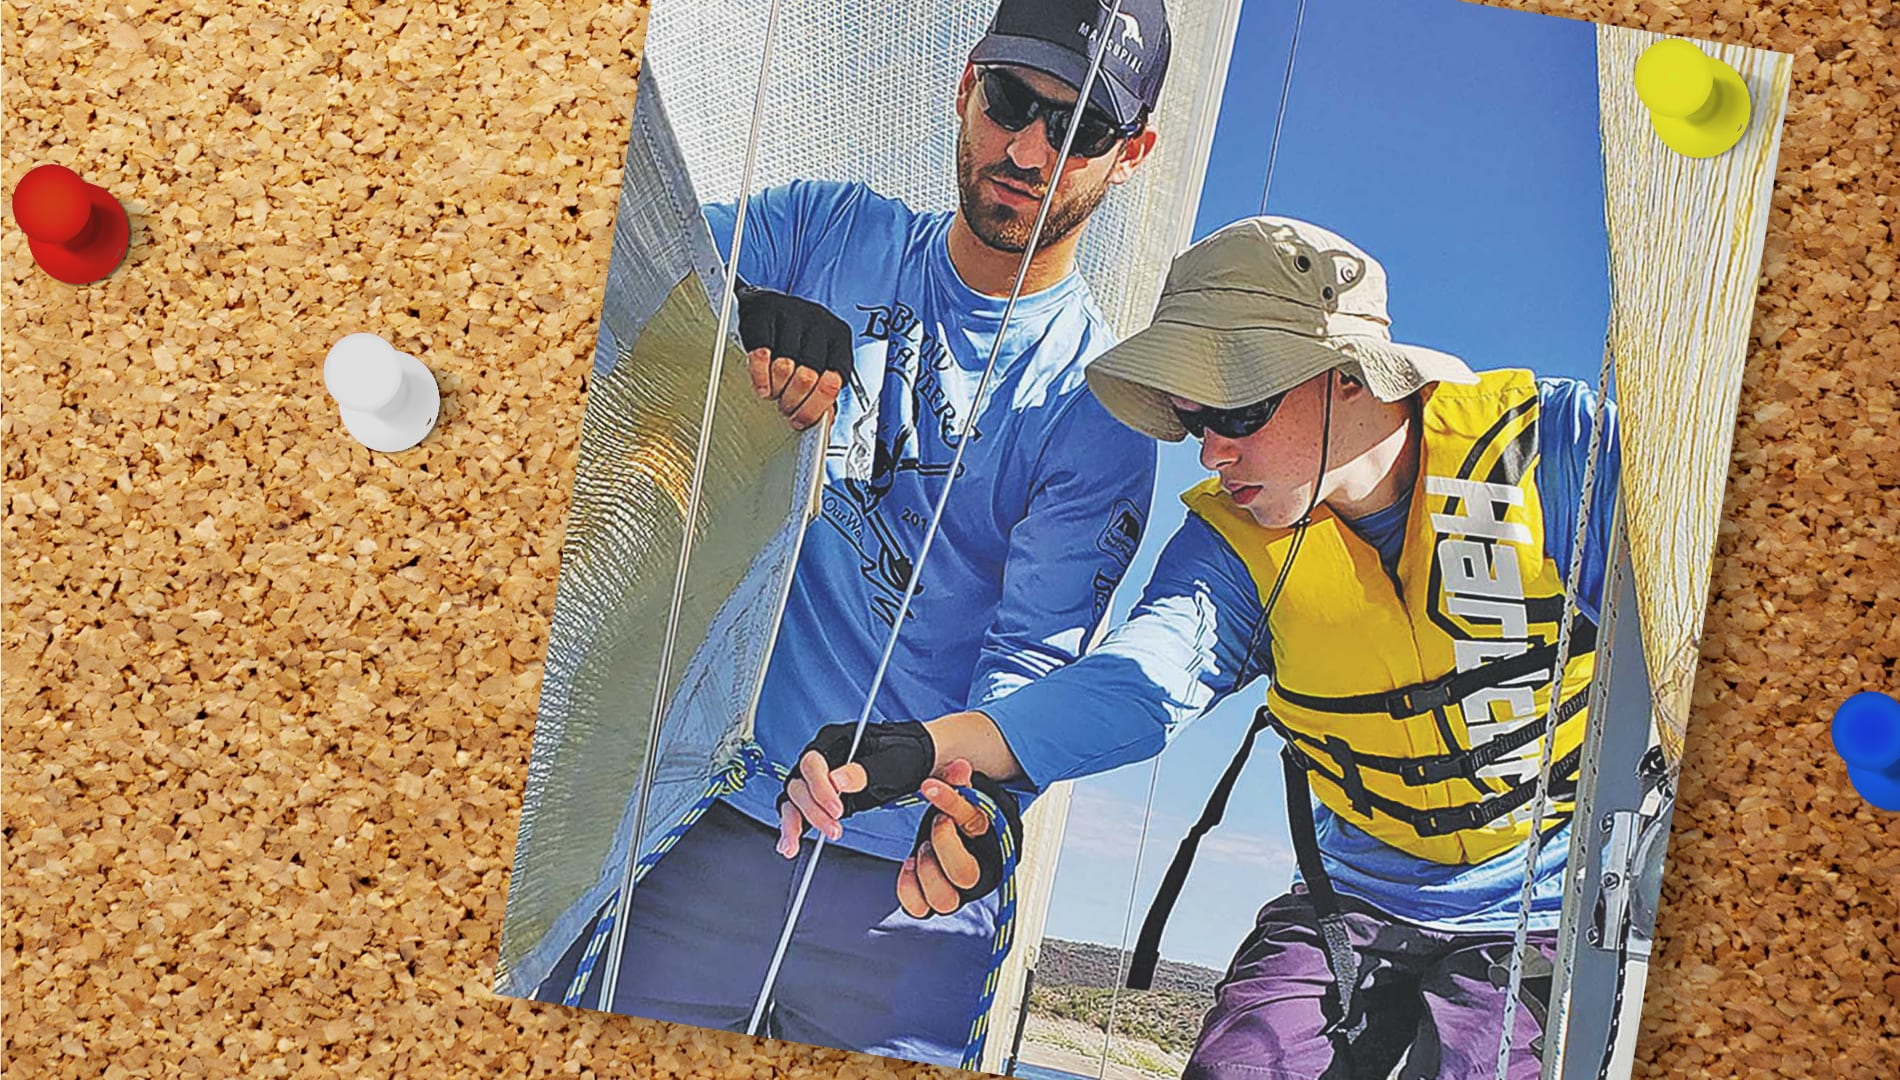 photo pinned to a cork board. photo shows a man in a hat and sunglasses hellping a boy in a lifejacket on a sail boat.